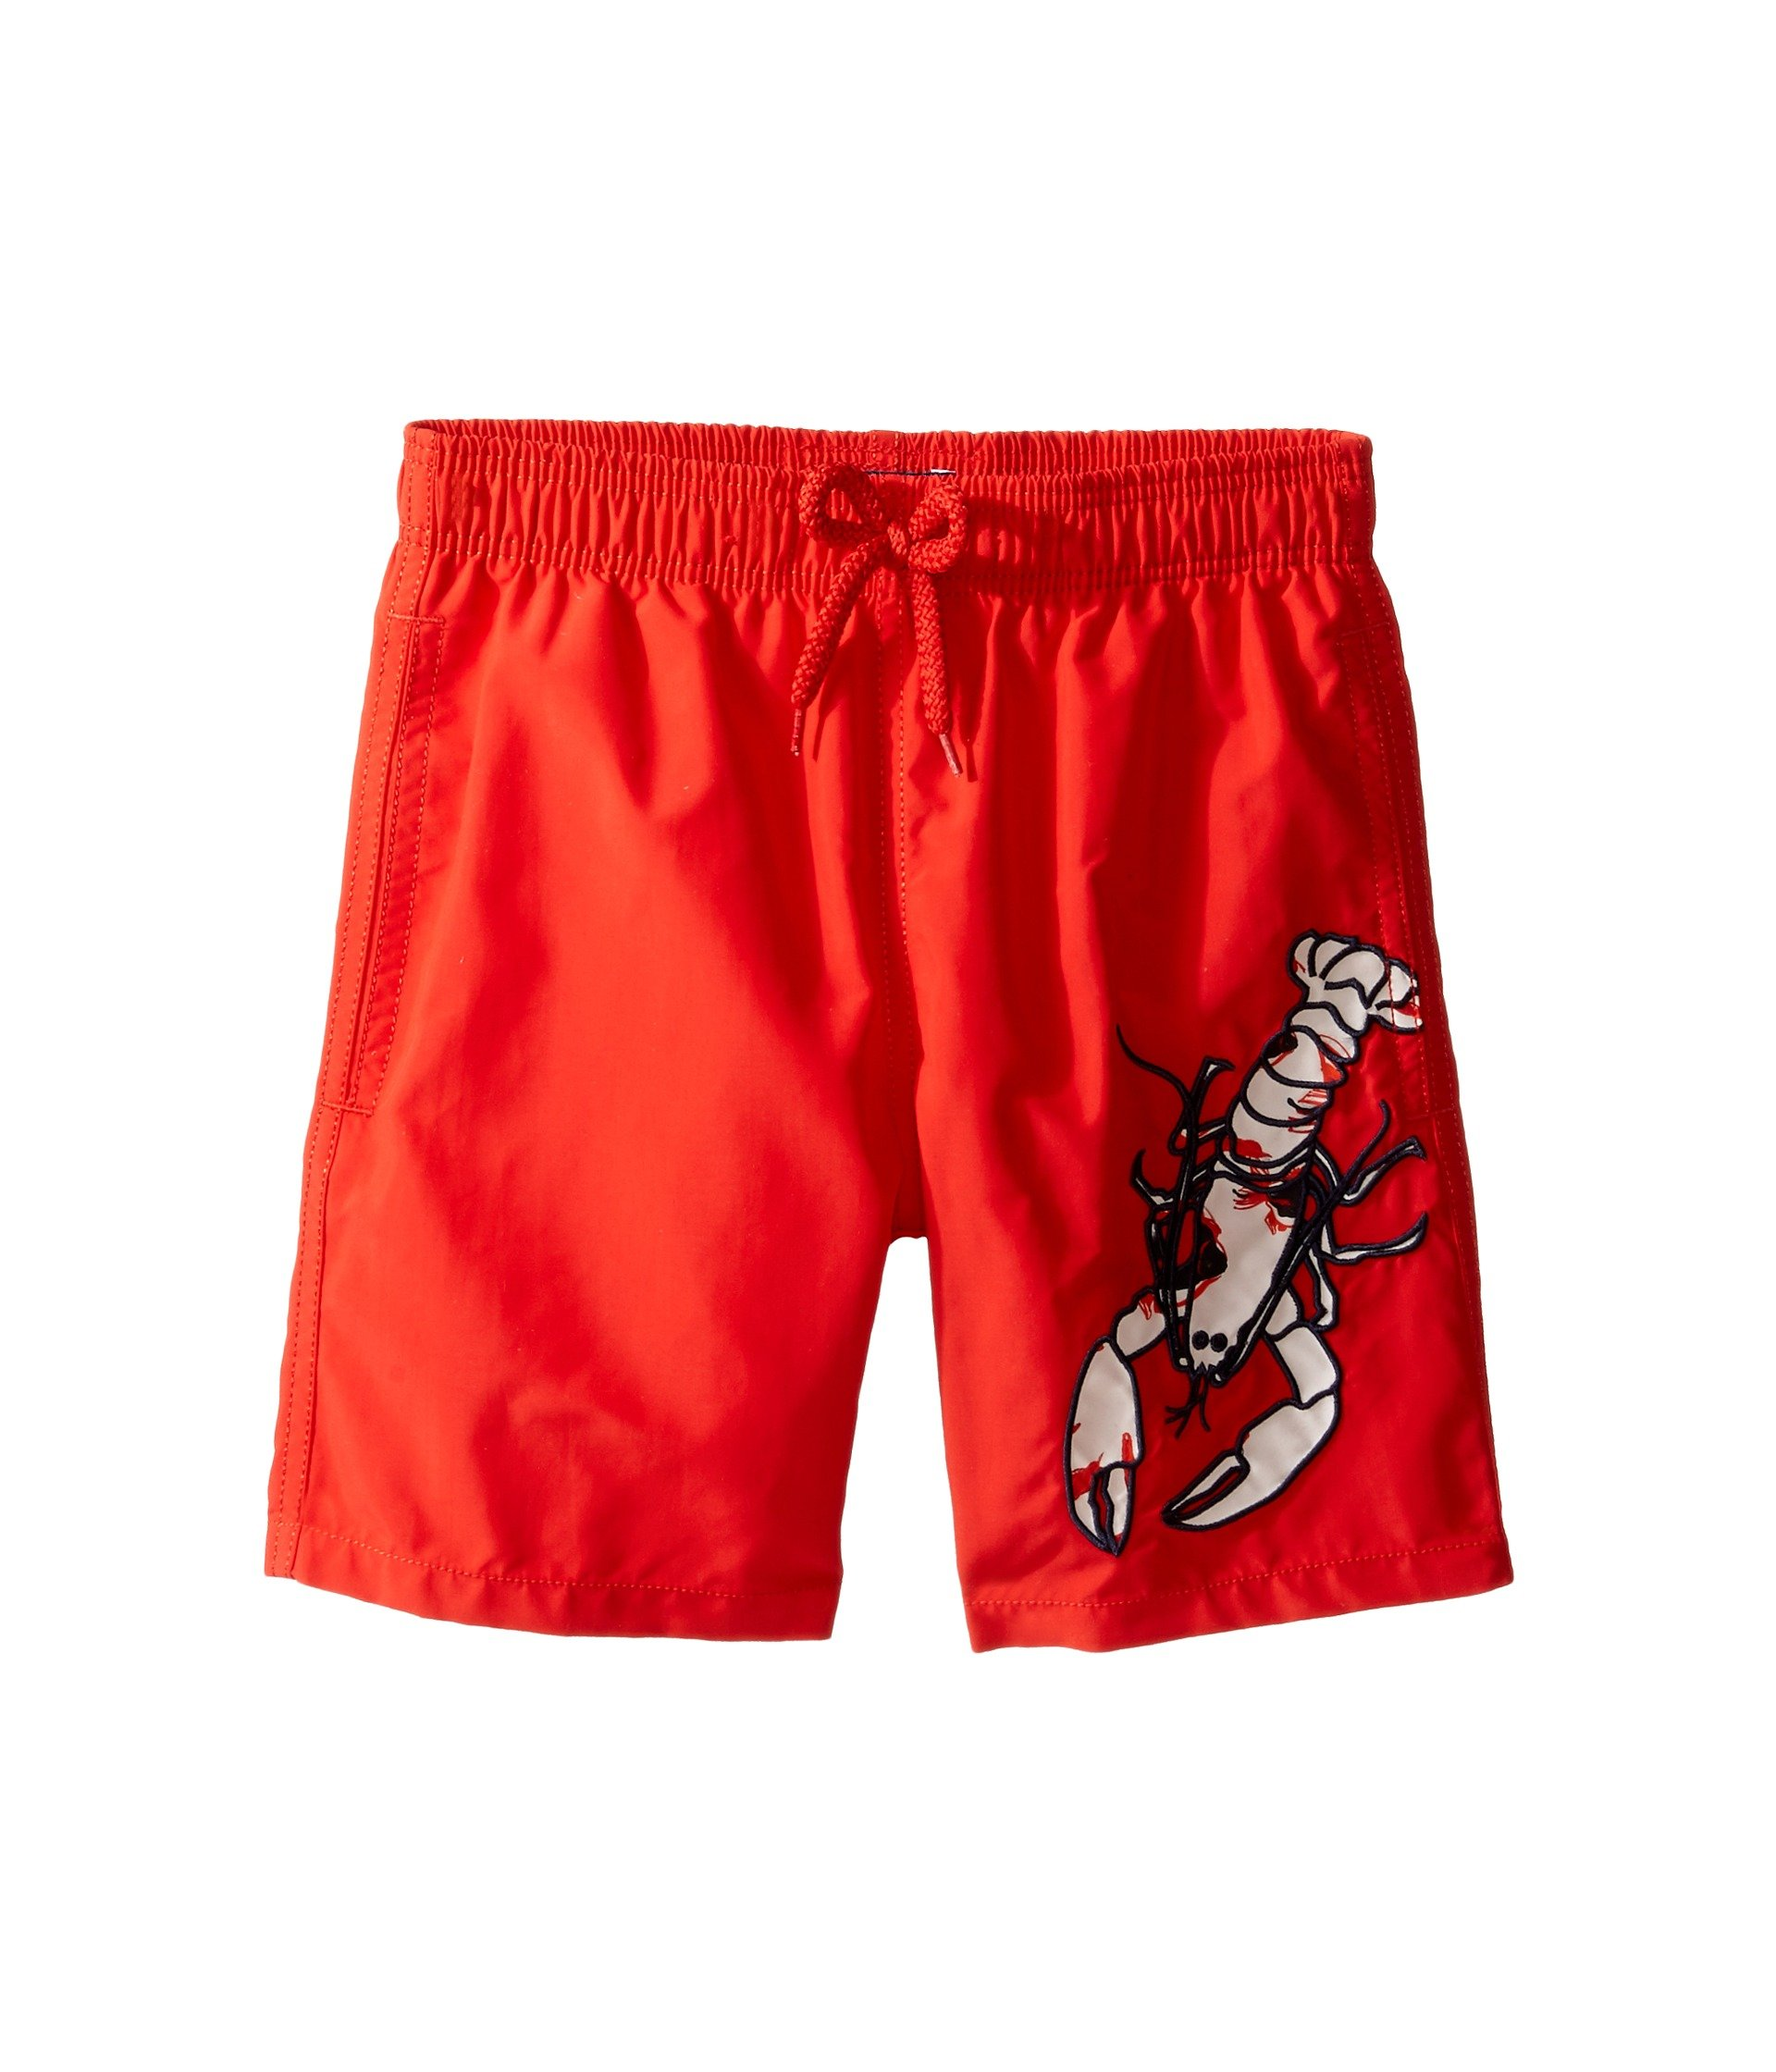 Vilebrequin - Lobster Embroidery Boy Swimwear  - Boys - 10 years - Poppy by Vilebrequin